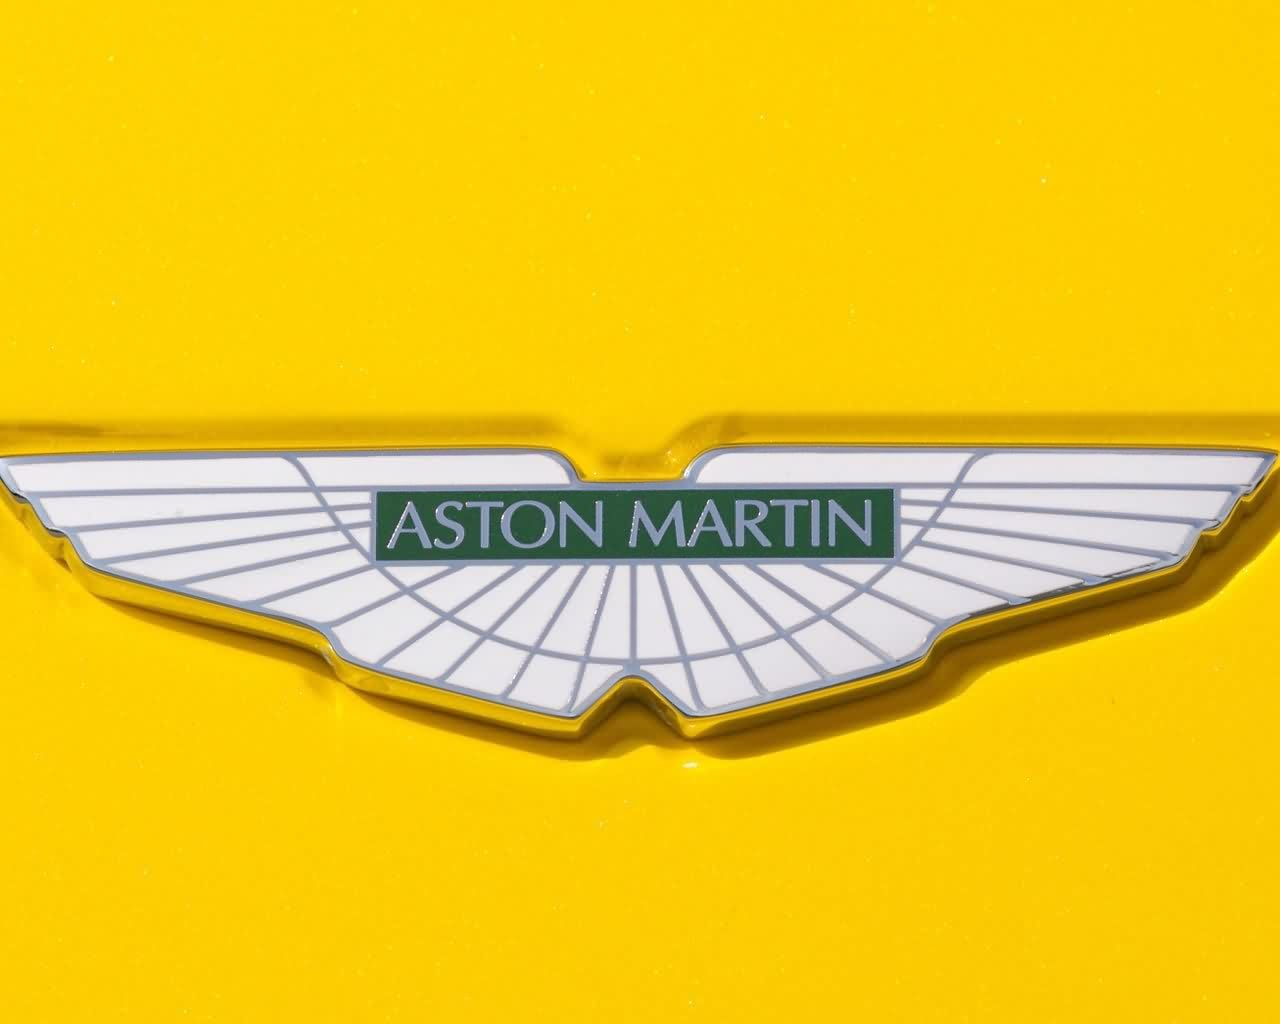 Luxury sports car logo sports car emblems sports cars - Find This Pin And More On Vintage Sport Cars By Mstreeton Aston Martin Logo My Car Logos